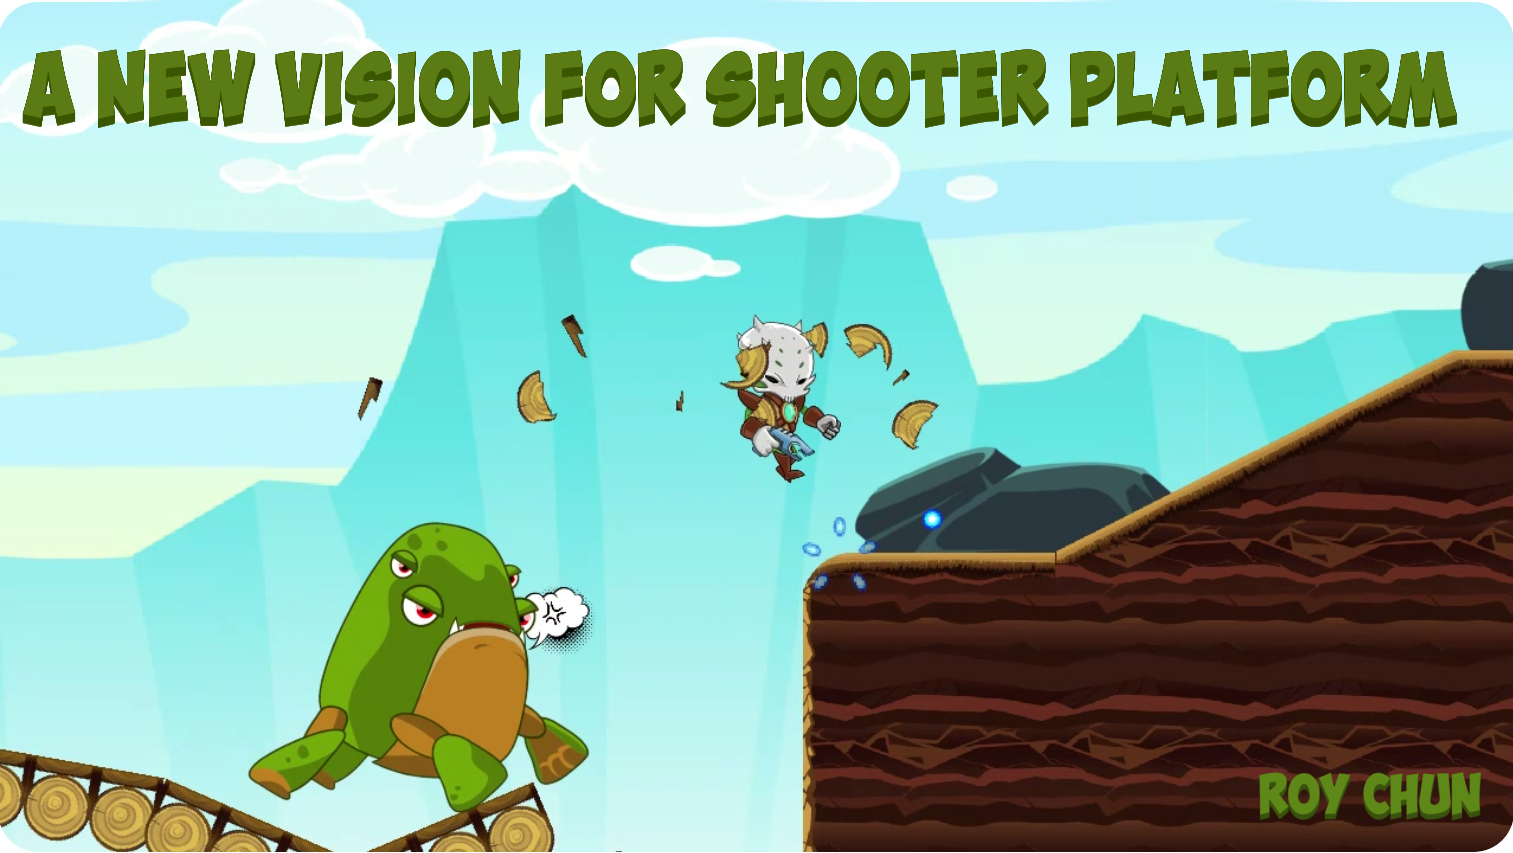 Roy Chun - Shooter Platform -- screenshot